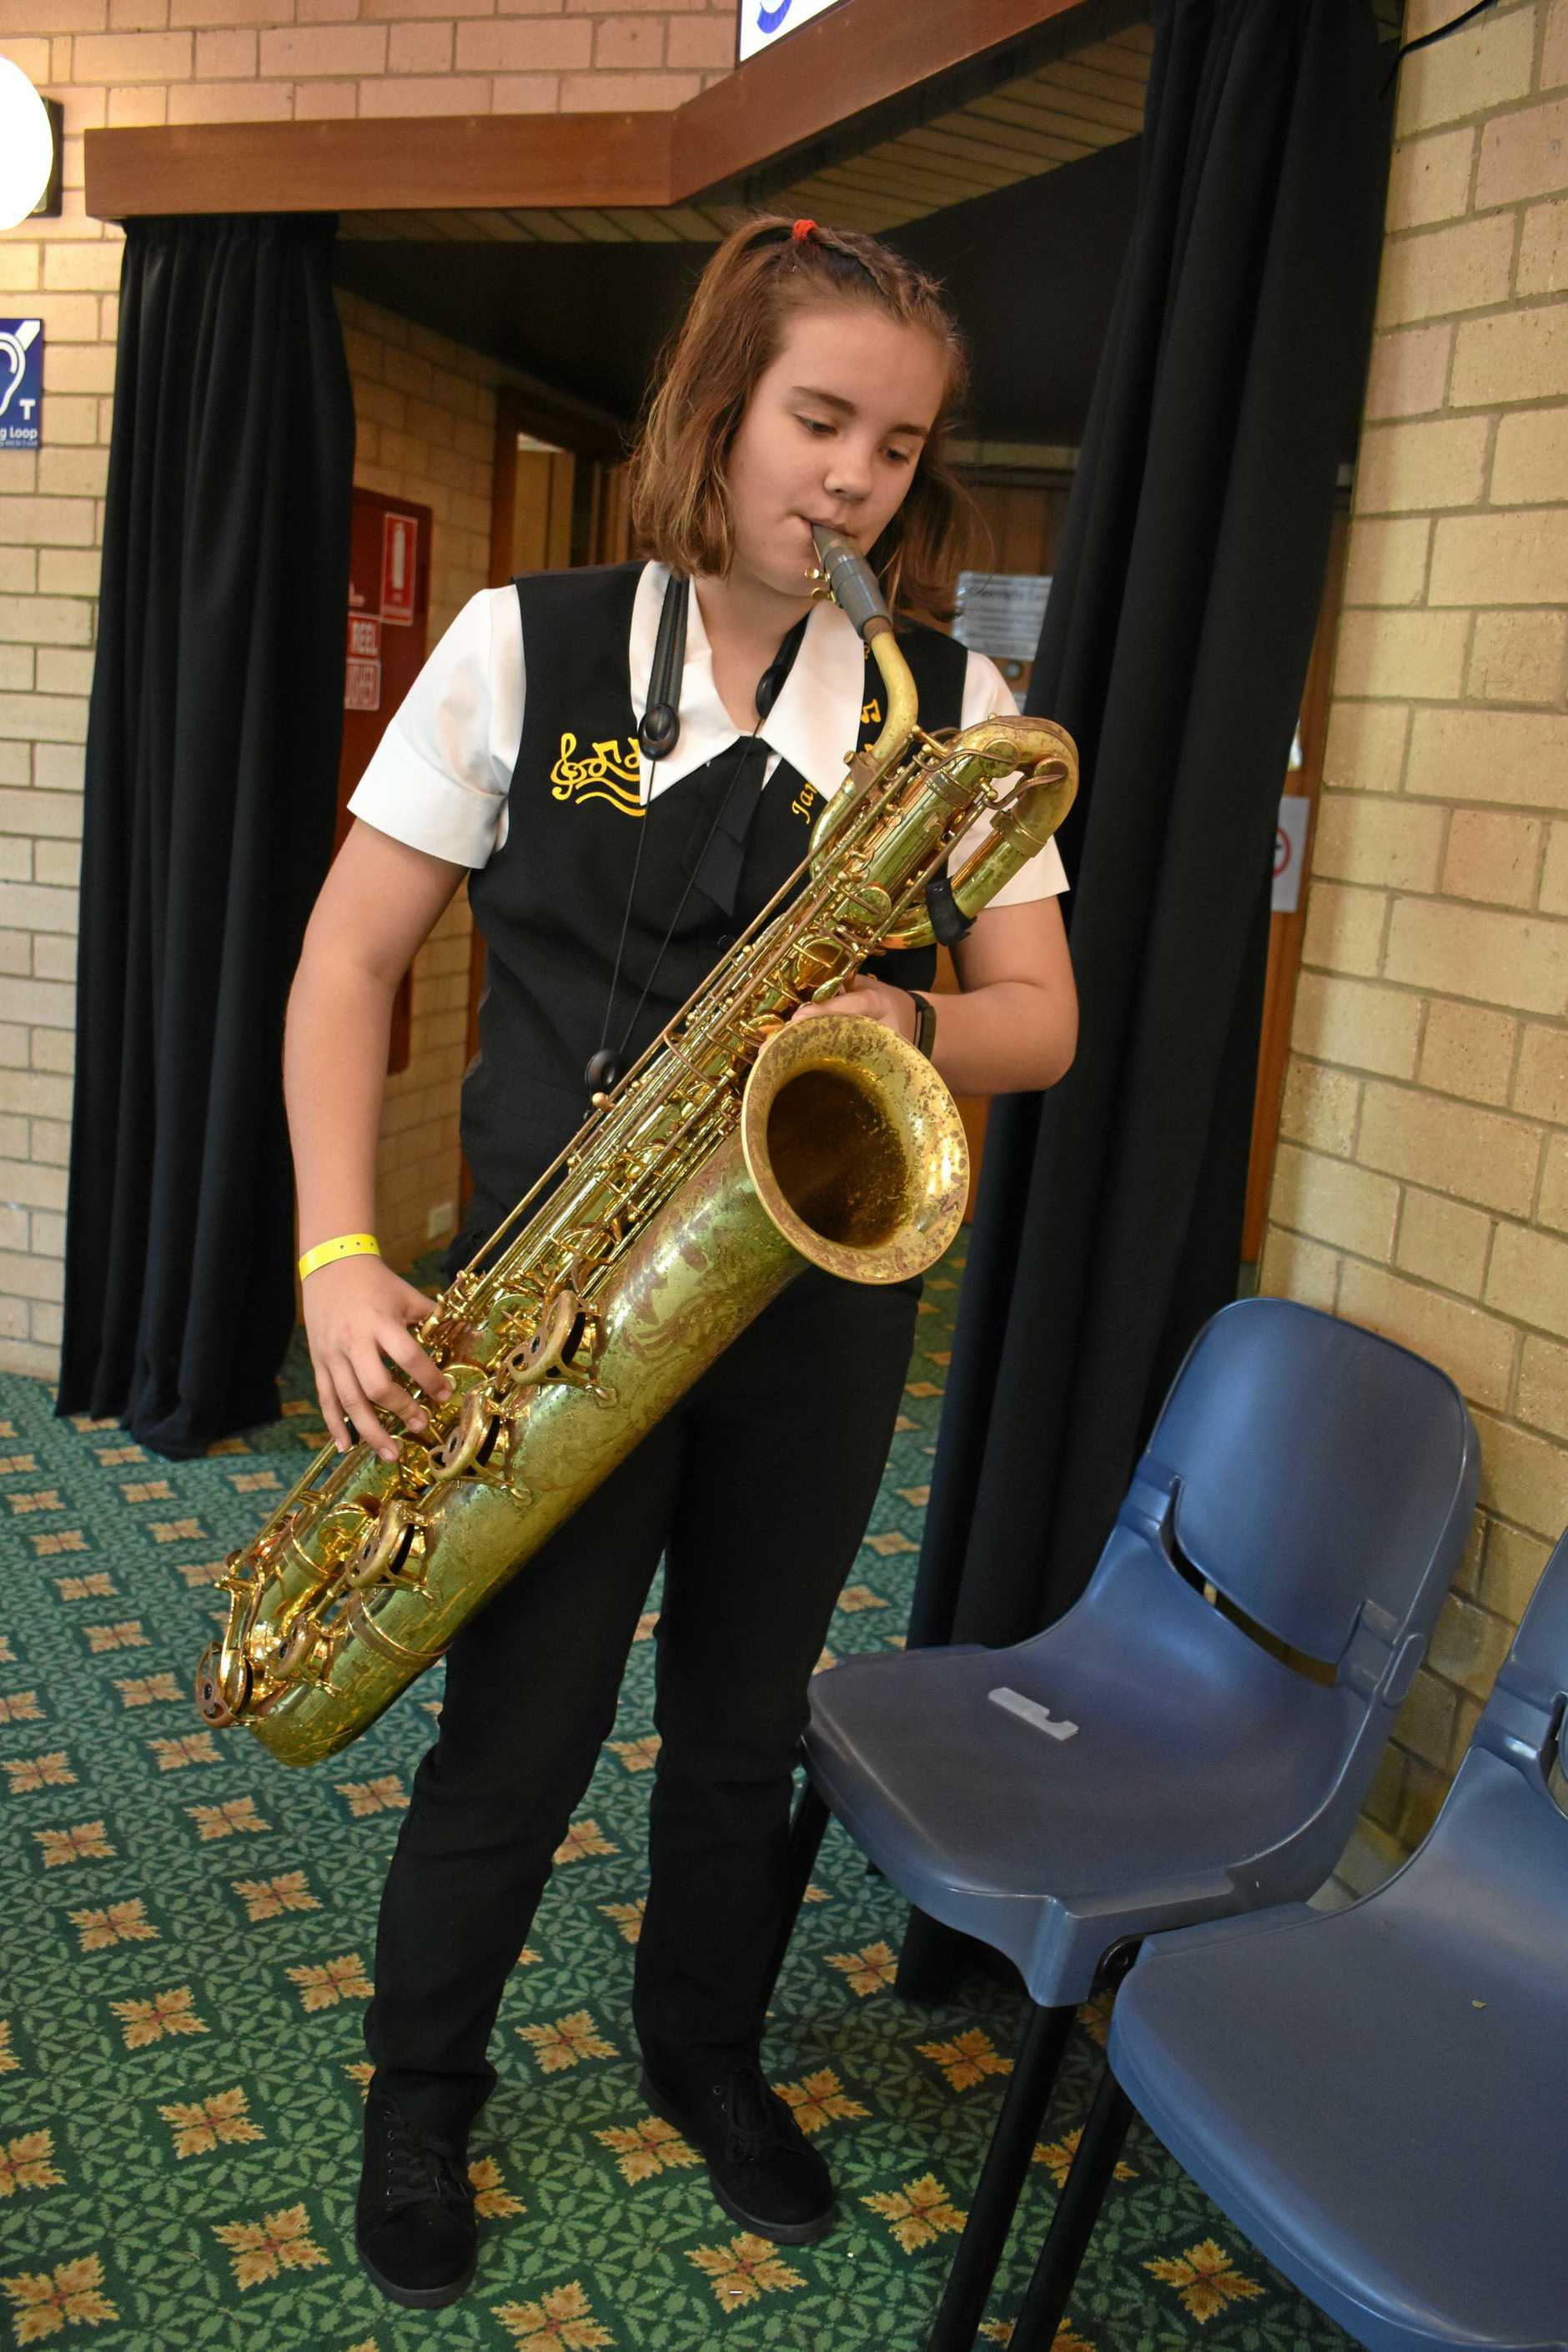 Phoebe Penny prepares for the saxophone ensemble event